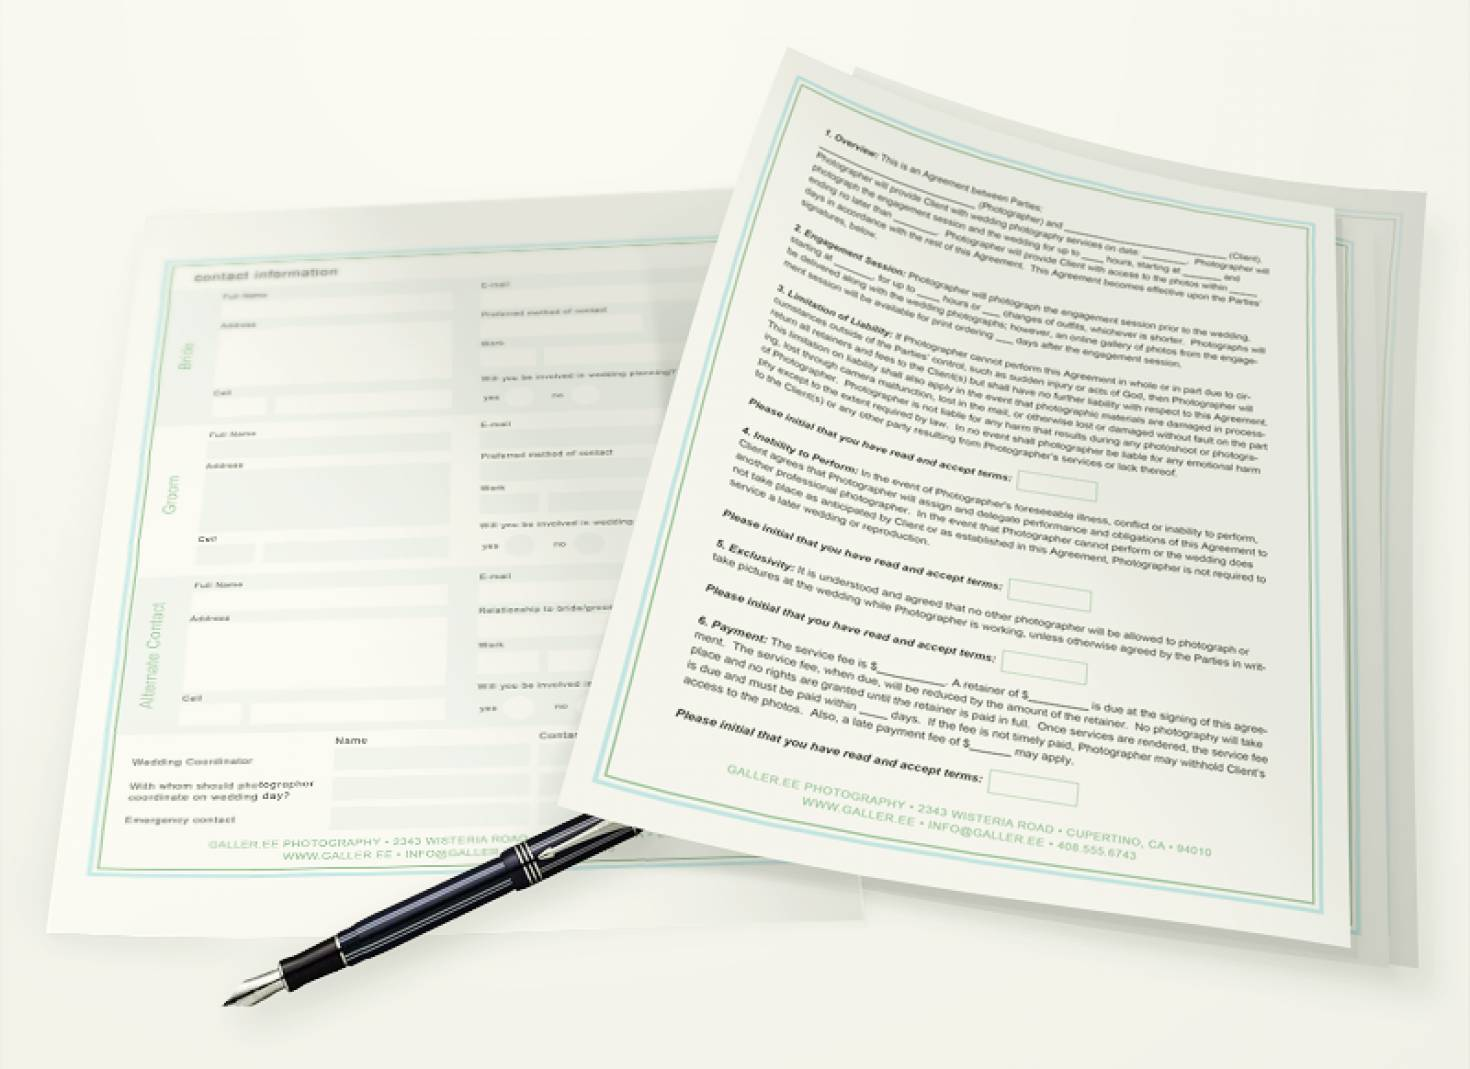 Wedding Contract Templates For Photographers